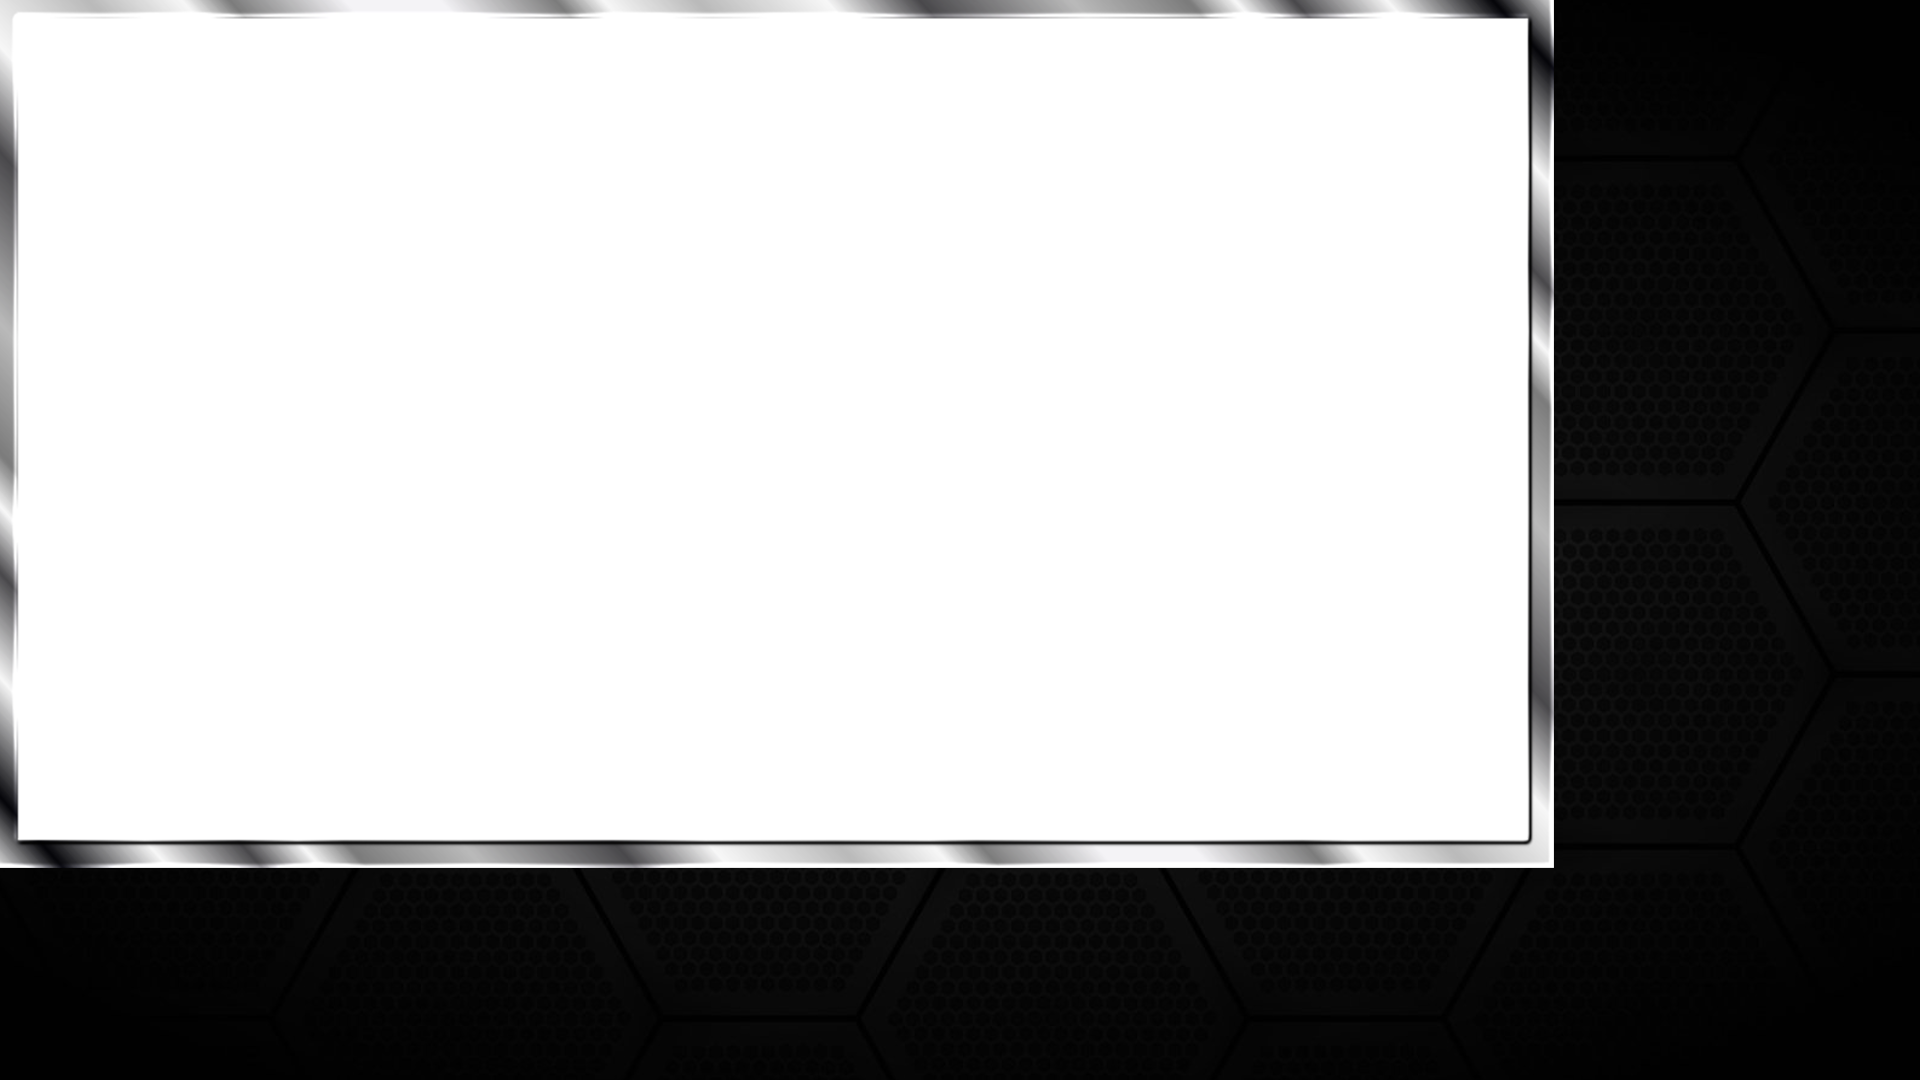 free twitch overlay template - twitch overlay generic black